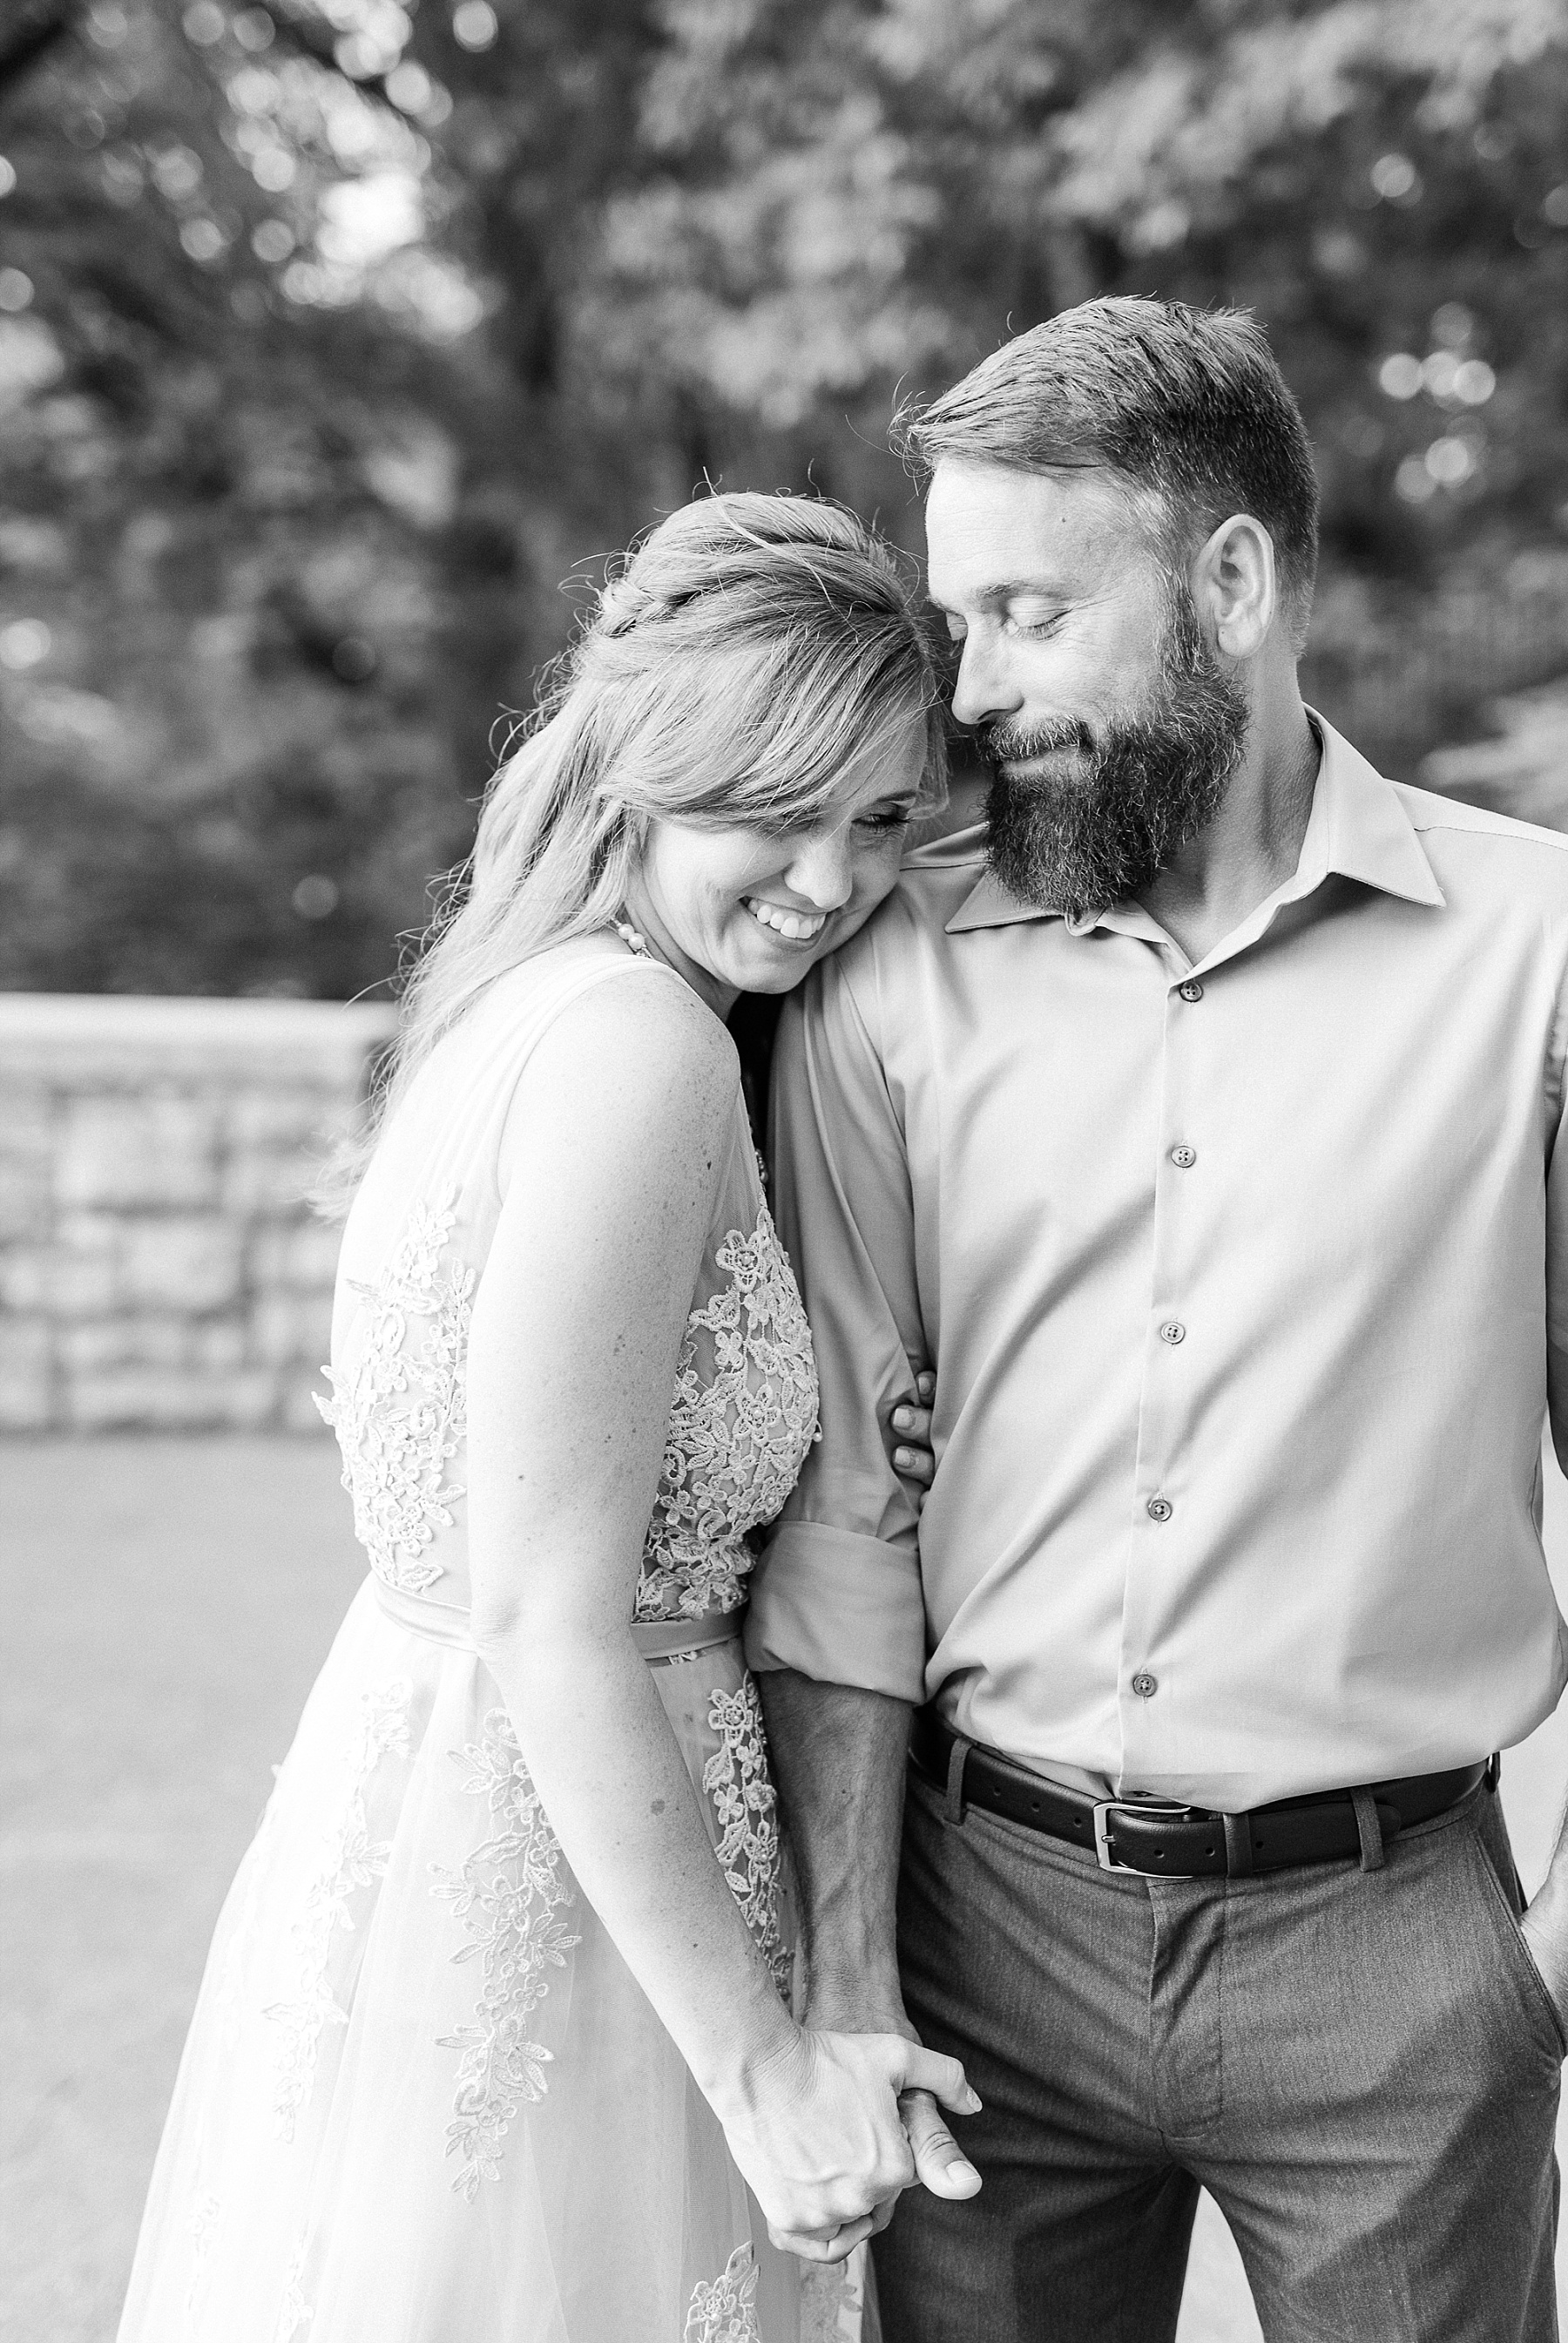 Chuck and Julie 25th Anniversary in Silver at Missouri Governor's Gardens by Kelsi Kliethermes Photography_0009.jpg